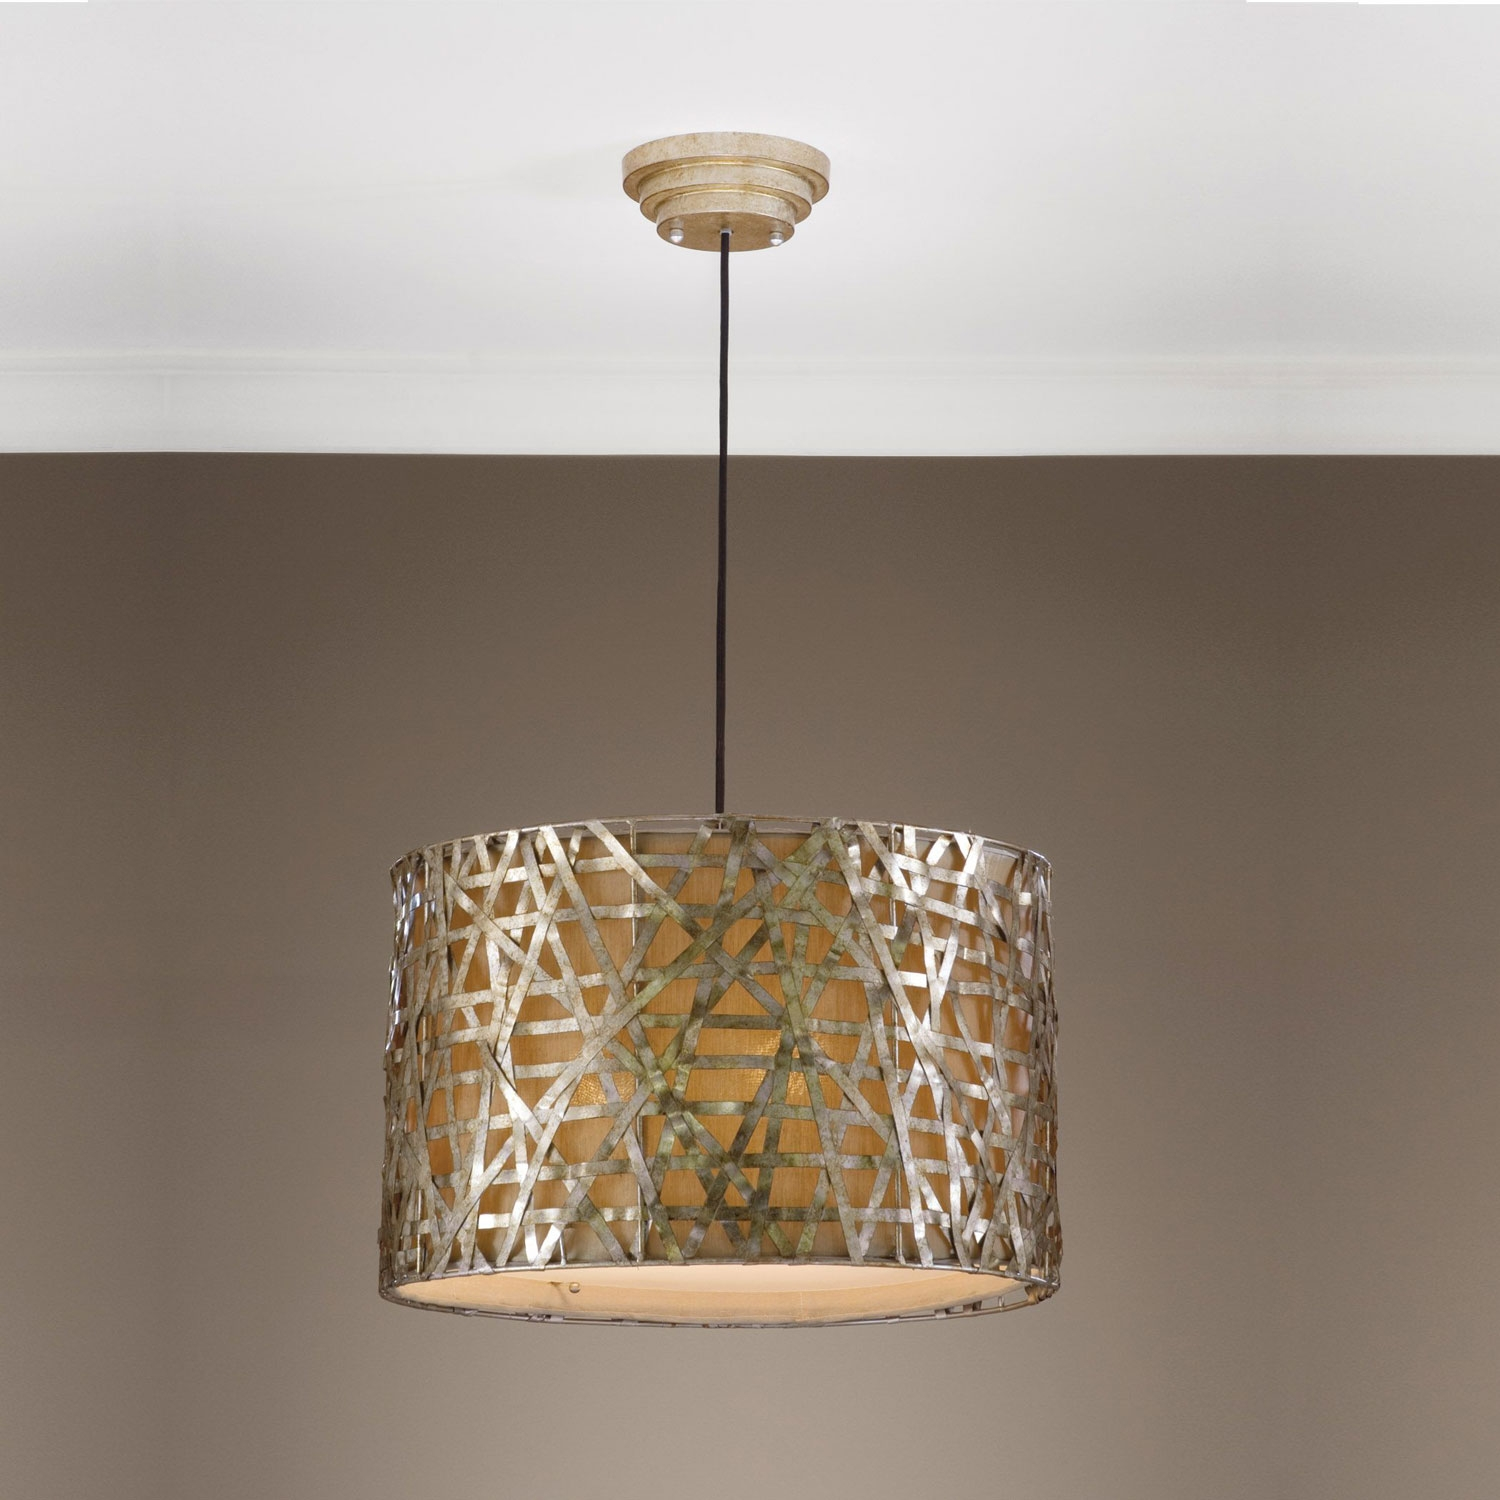 Alita Drum Pendant Uttermost Drum Pendant Lighting Ceiling Lighting With Regard To Metal Drum Chandeliers (Image 1 of 25)